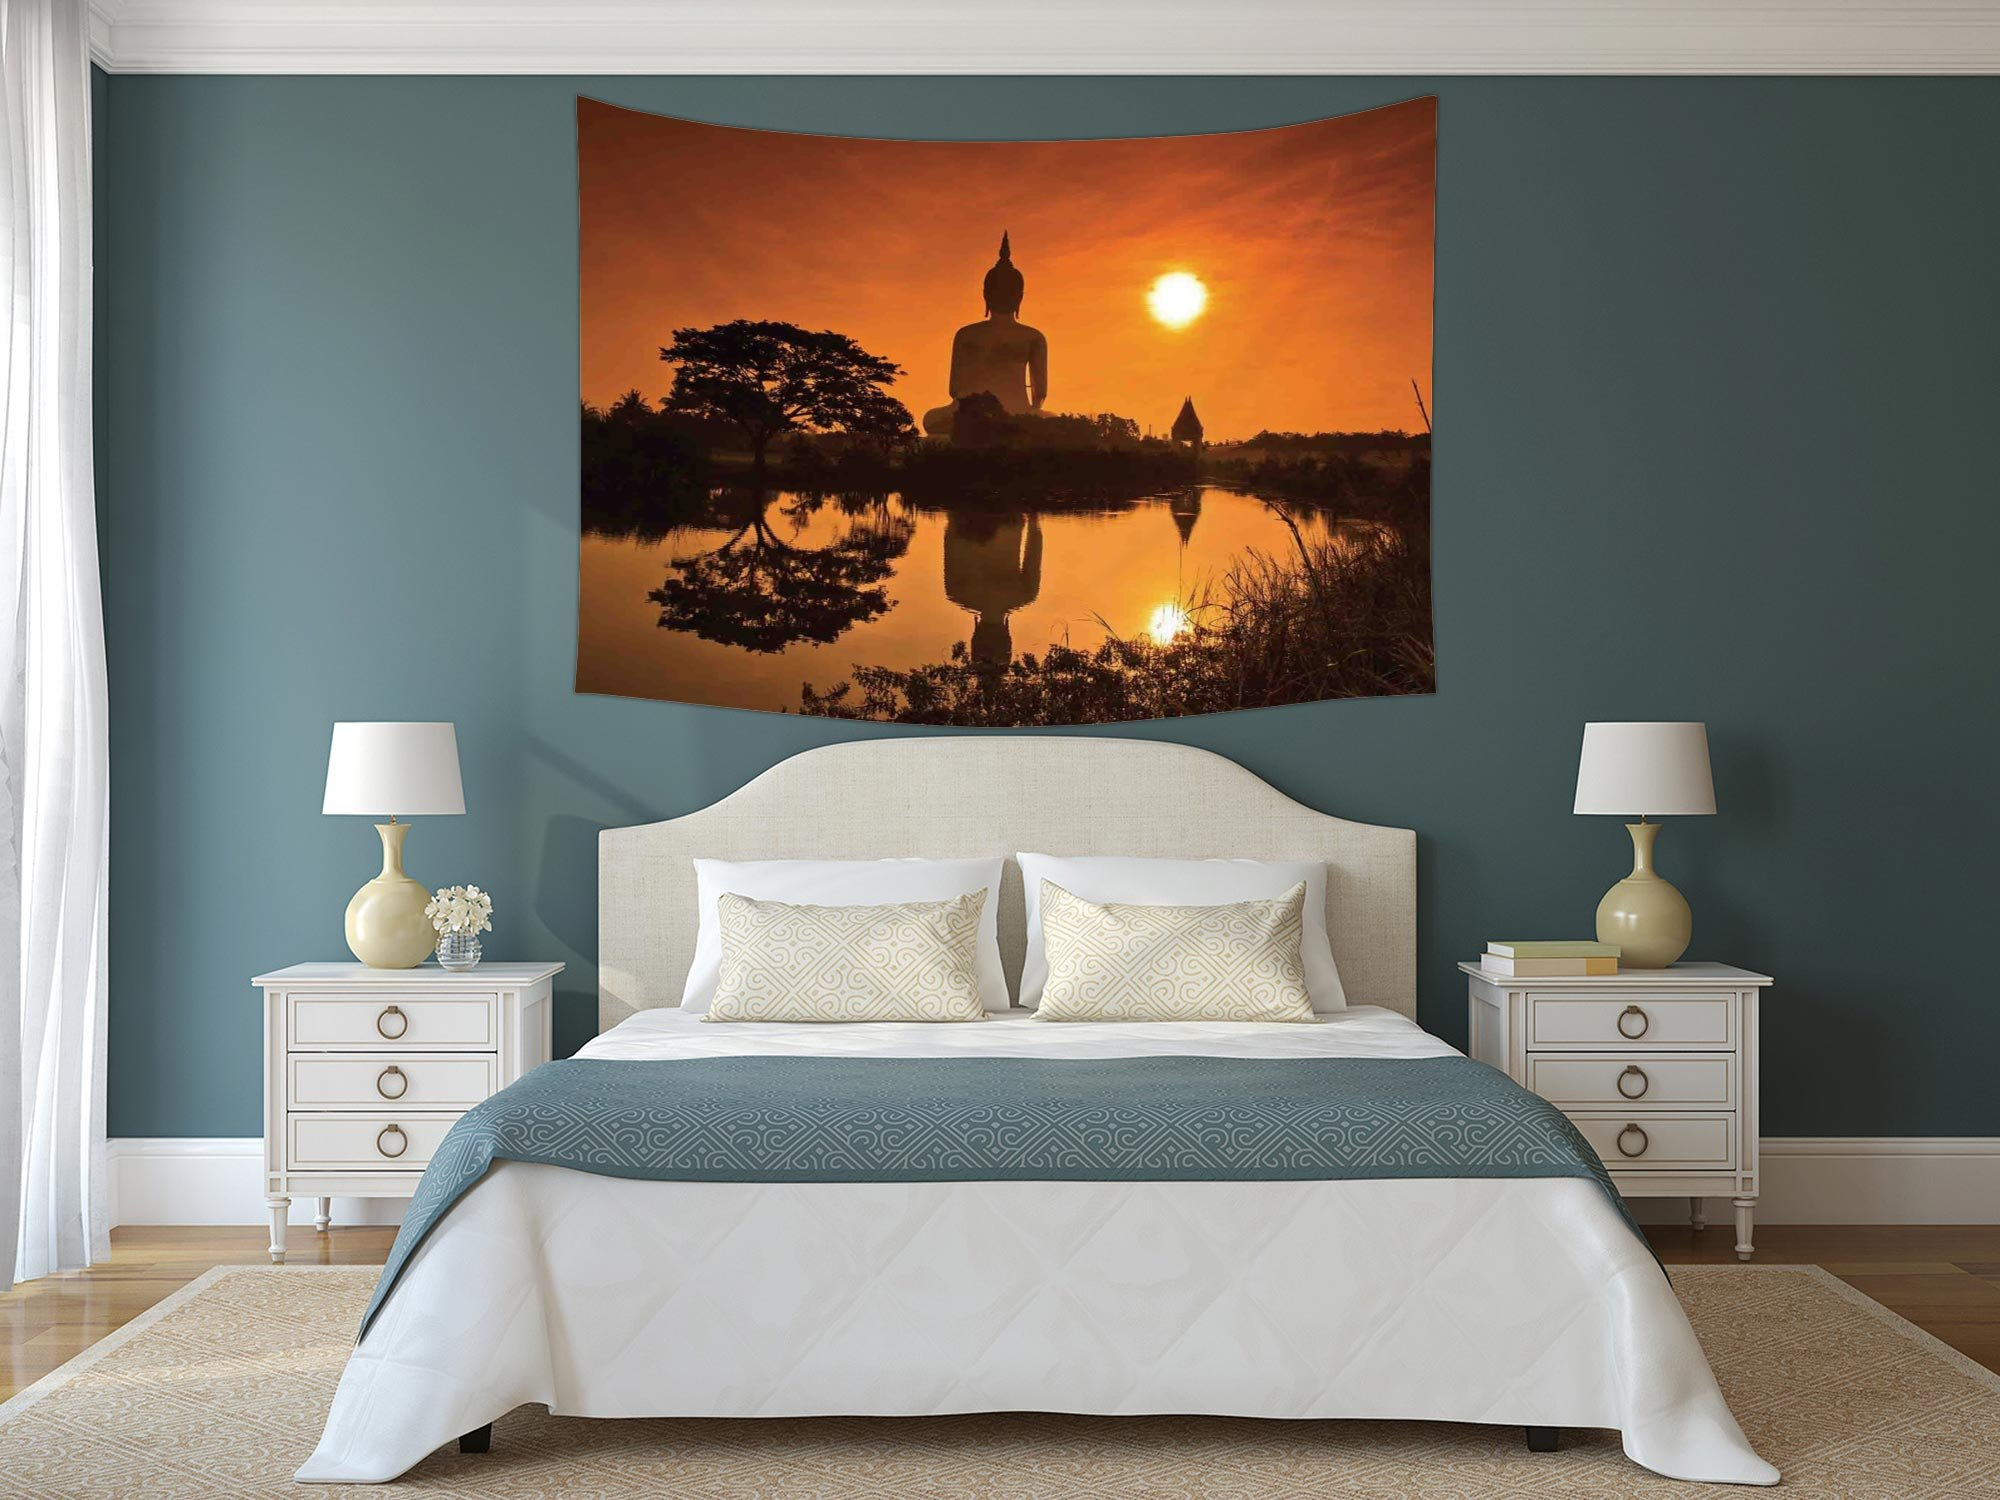 Polyester Tapestry Wall Hanging,Asian Decor,Big Giant Statue by the River at Sunset Thai Asian Culture Scenery Zen Print Decorative,Burnt Orange,Wall Decor for Bedroom Living Room Dorm by iPrint